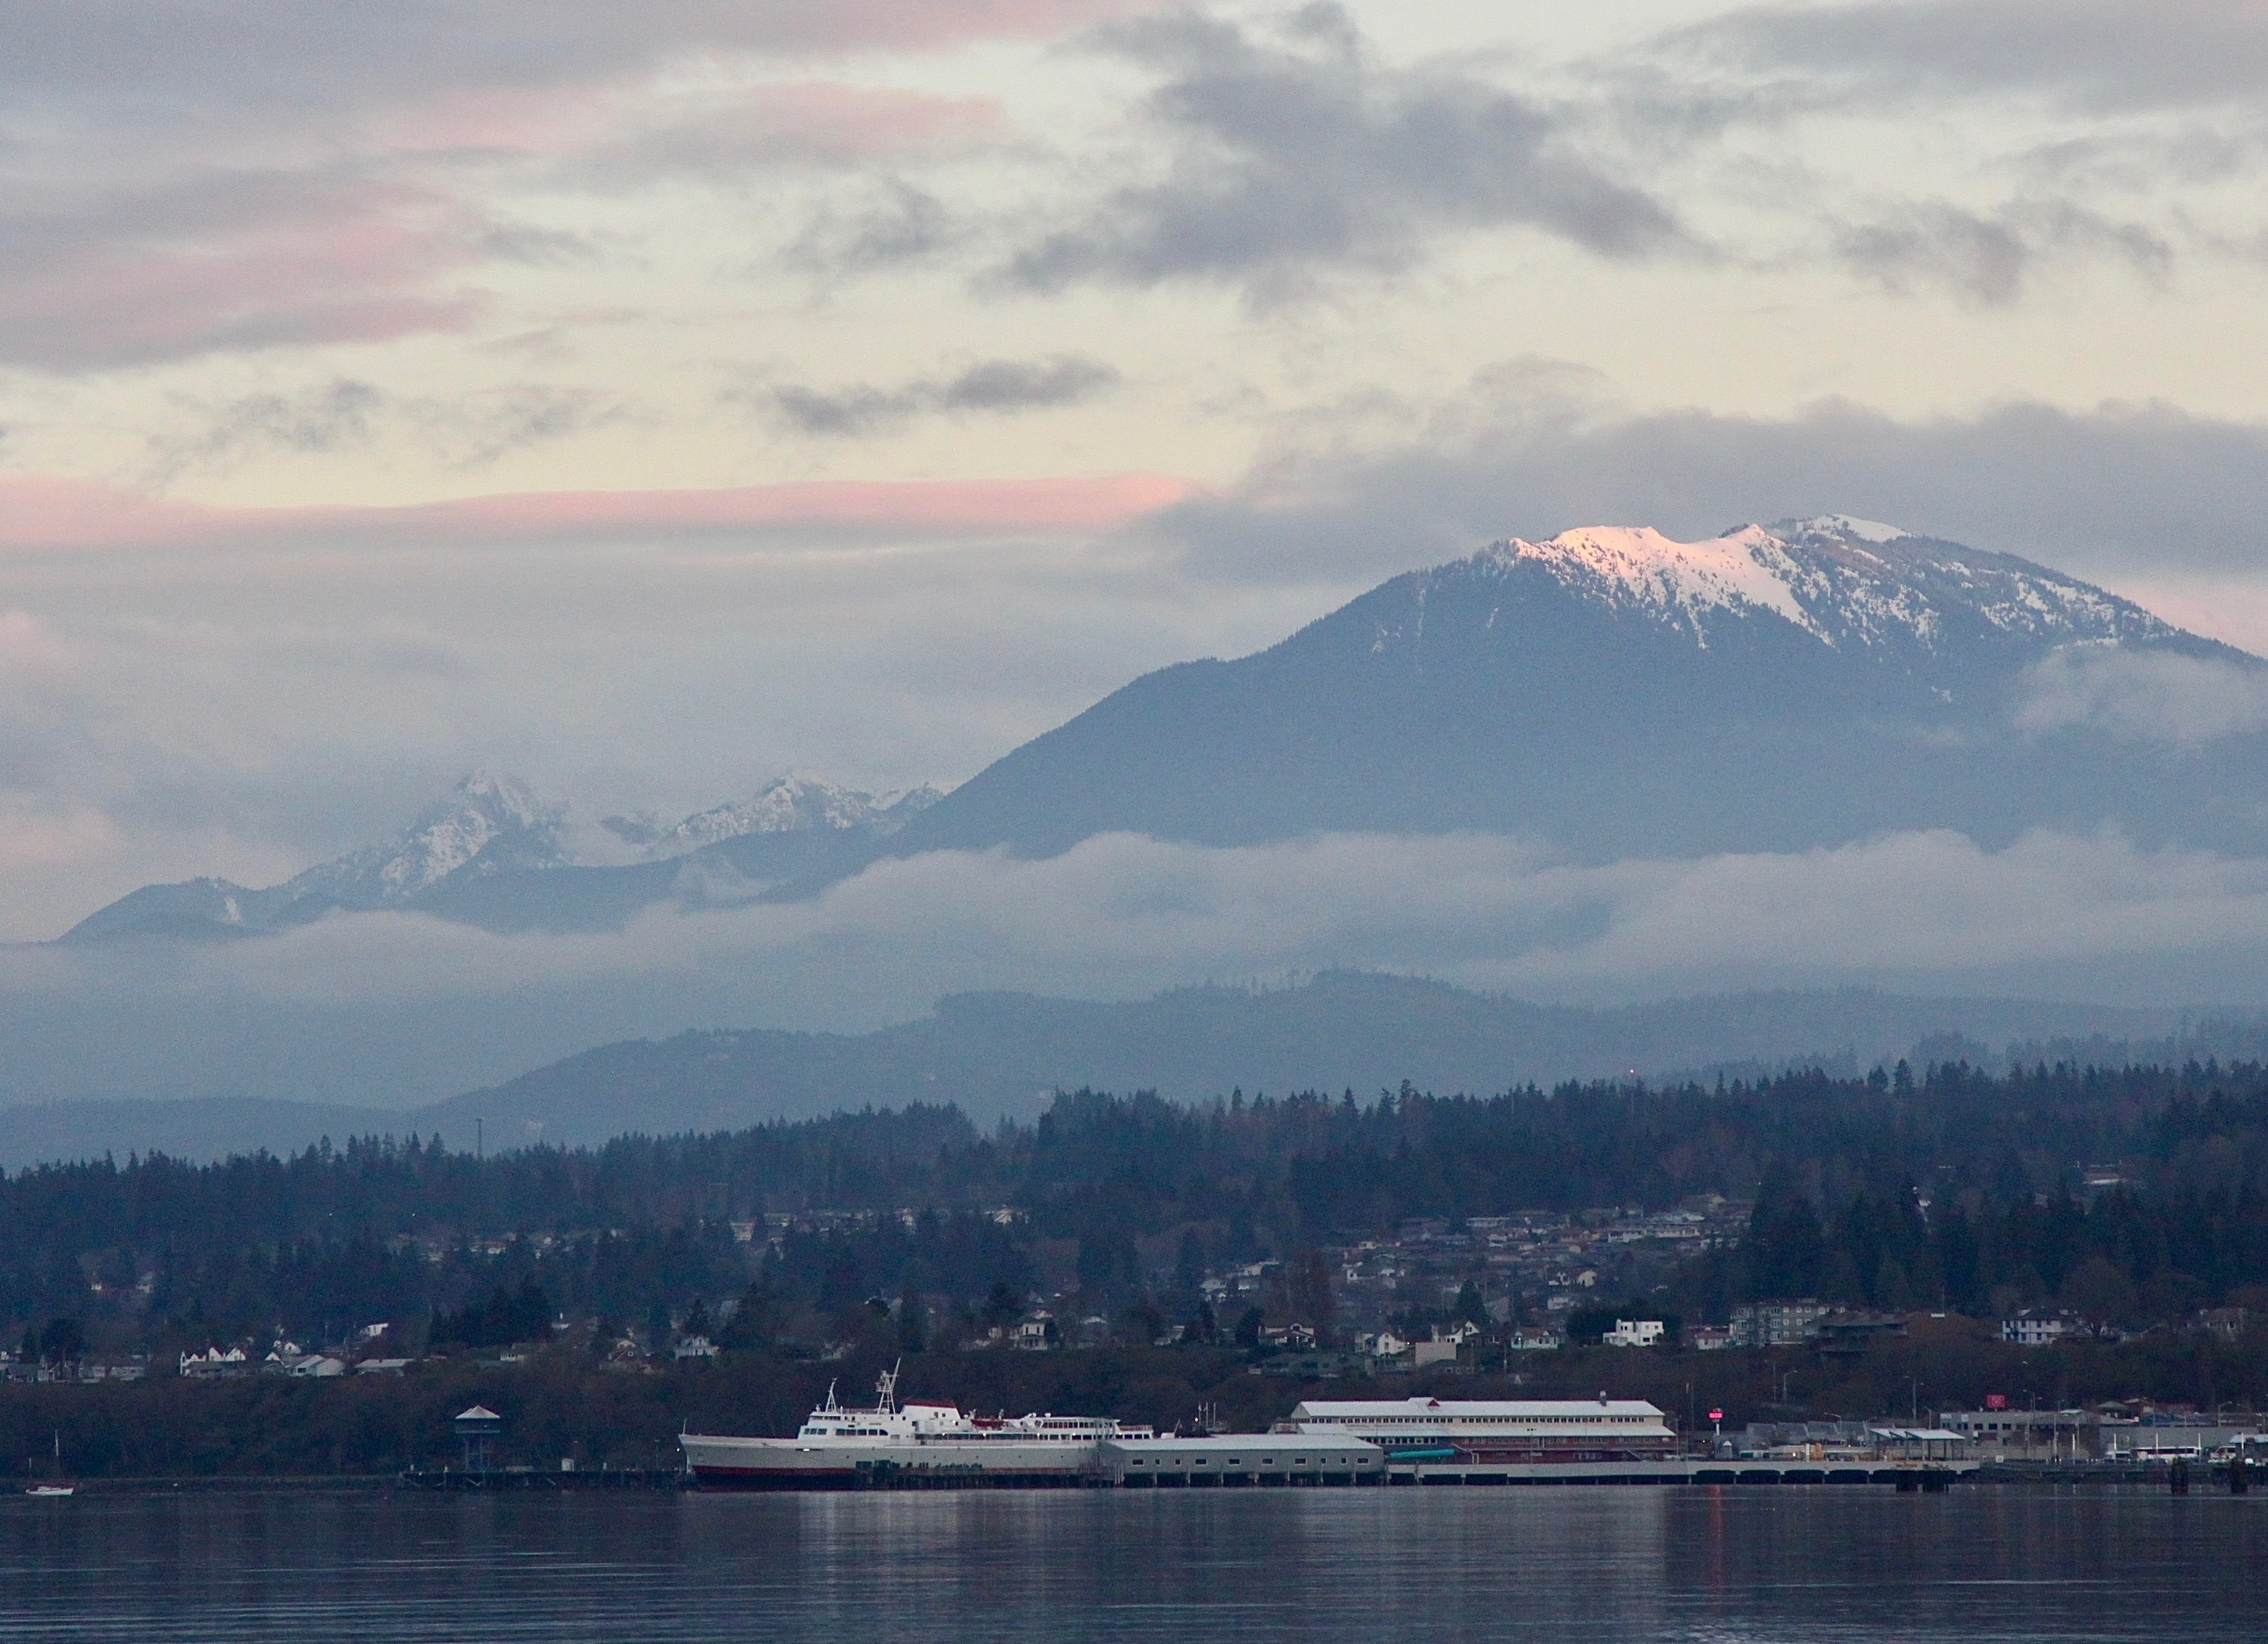 Mountains by Port Angeles